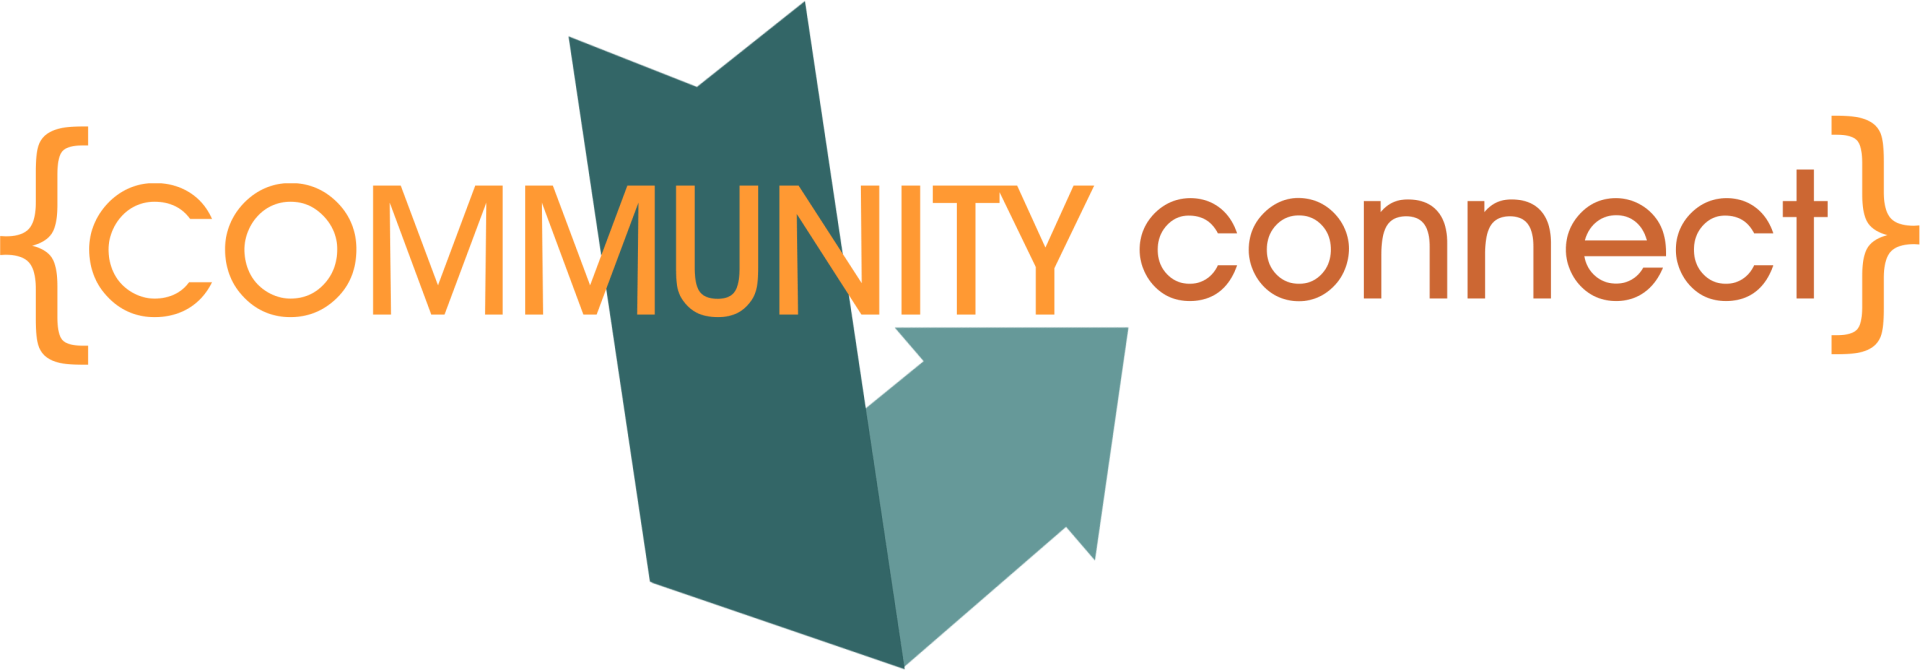 Community COnnect logo no v2 BG